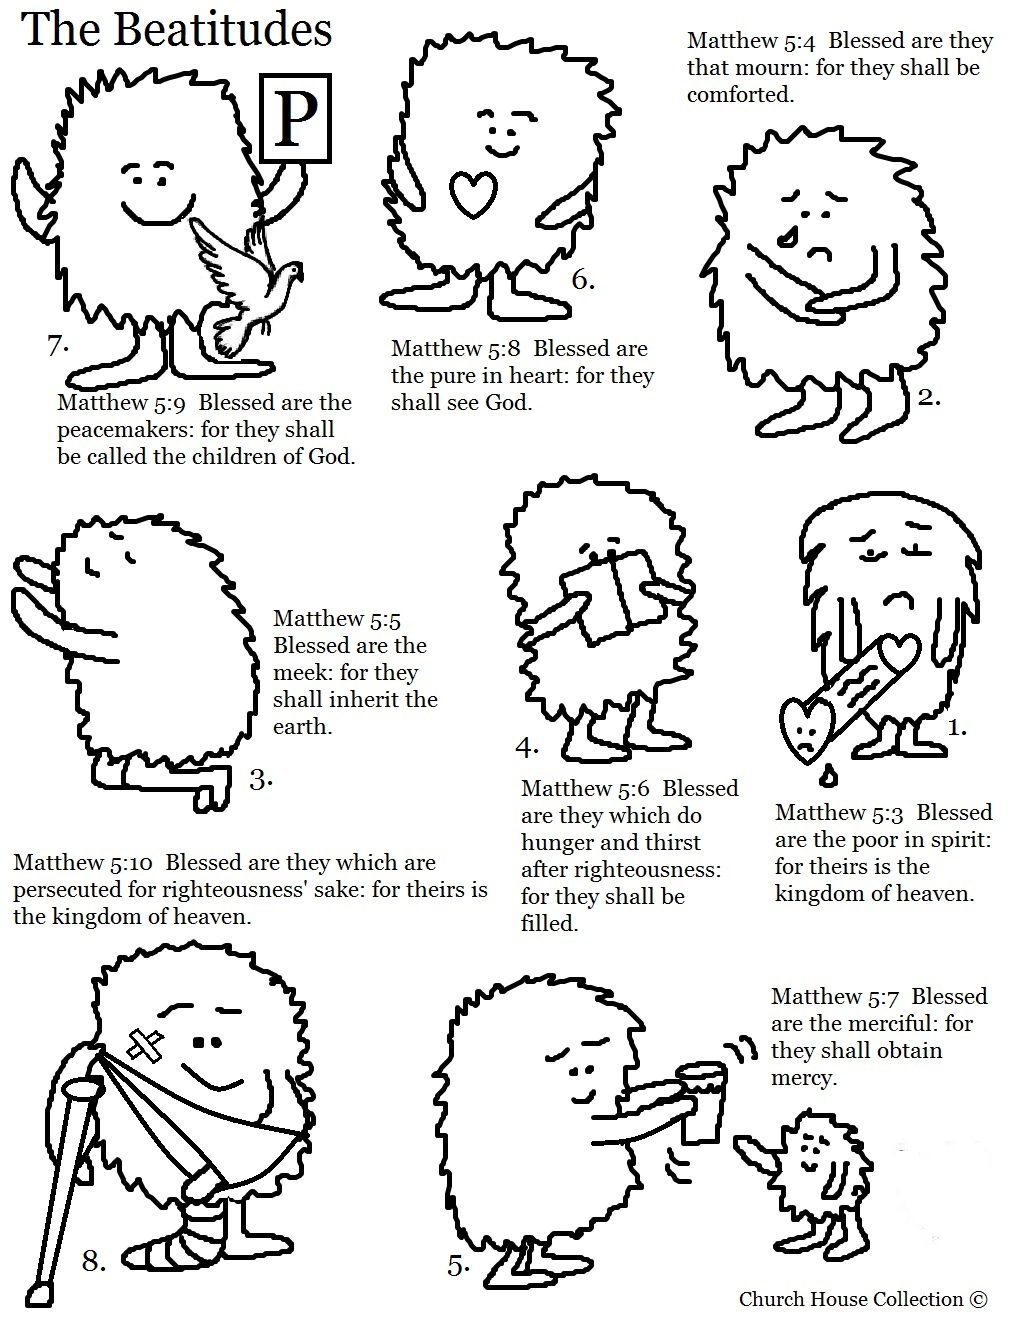 Coloring pages iphone - Download Image Beatitudes Coloring Pages Pc Android Iphone